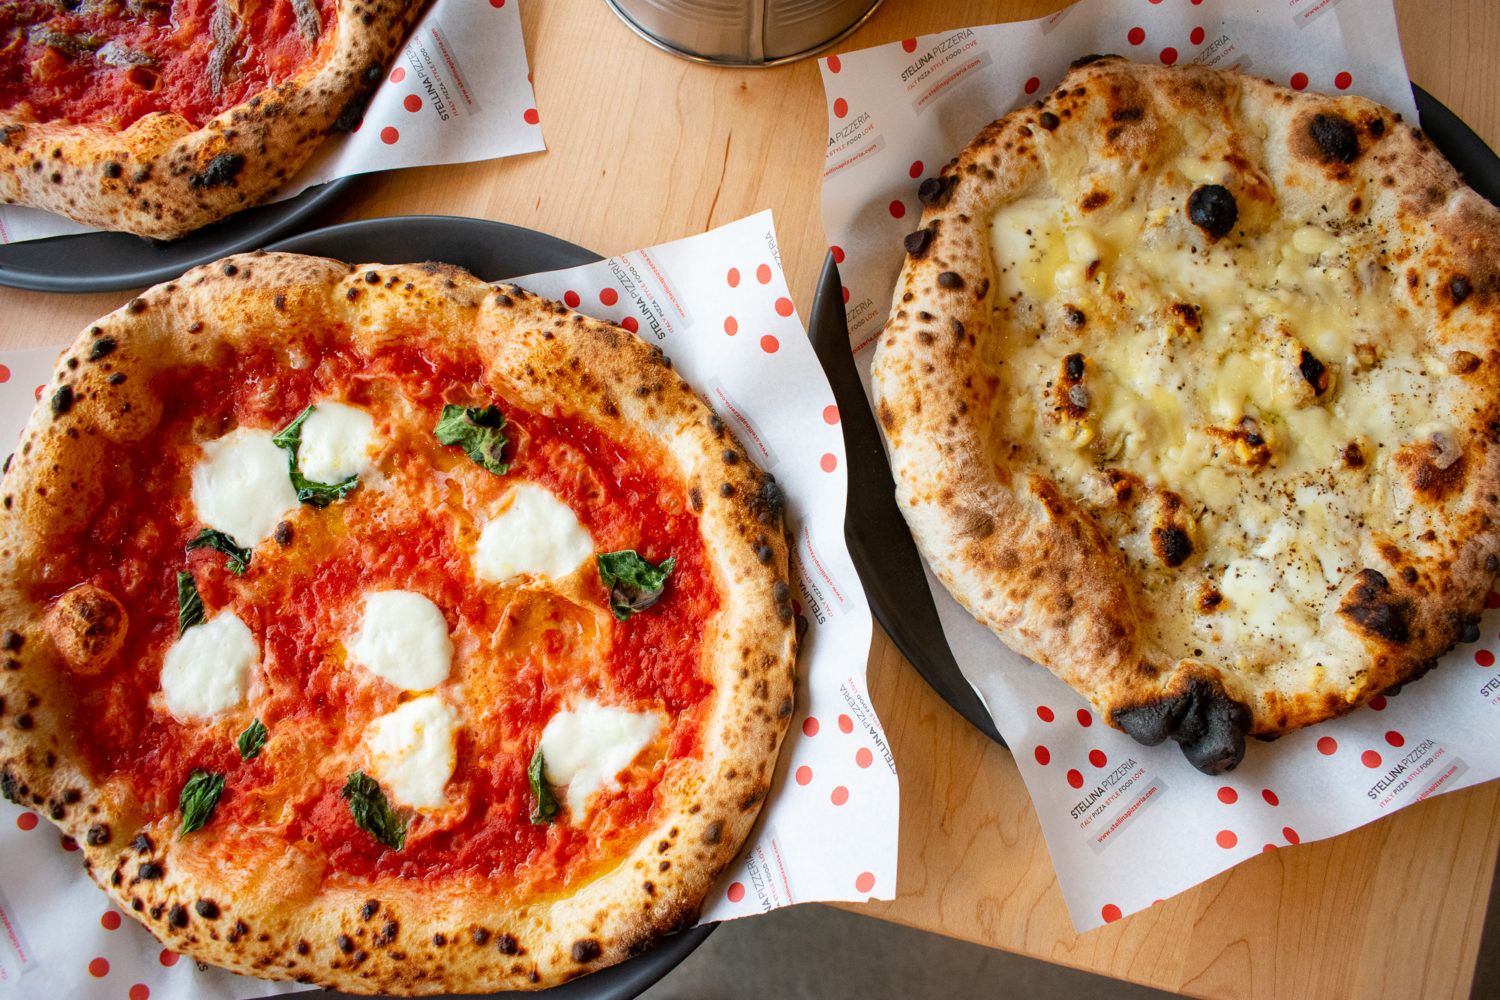 Margarita pizza and cacio e pepe pizza is made in the neo-Neapolitan style. Photograph by Meaghan Webster.